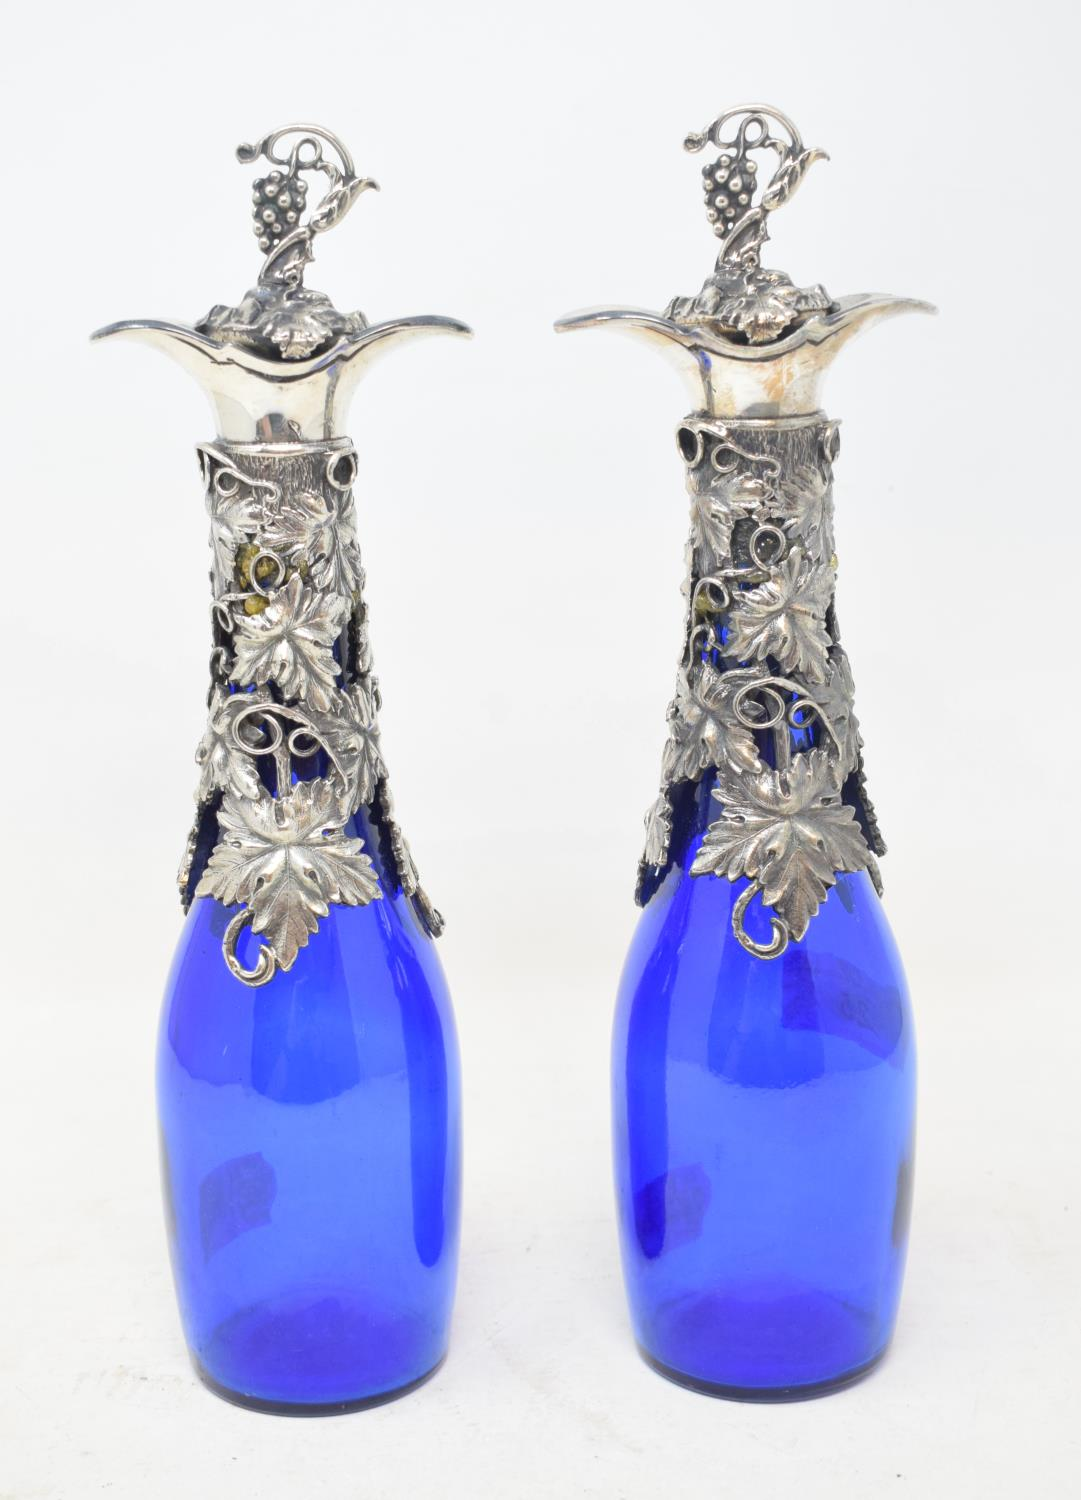 Lot 25 - A pair of blue glass decanters, with plated mounts, 16.5 cm high (2) Modern